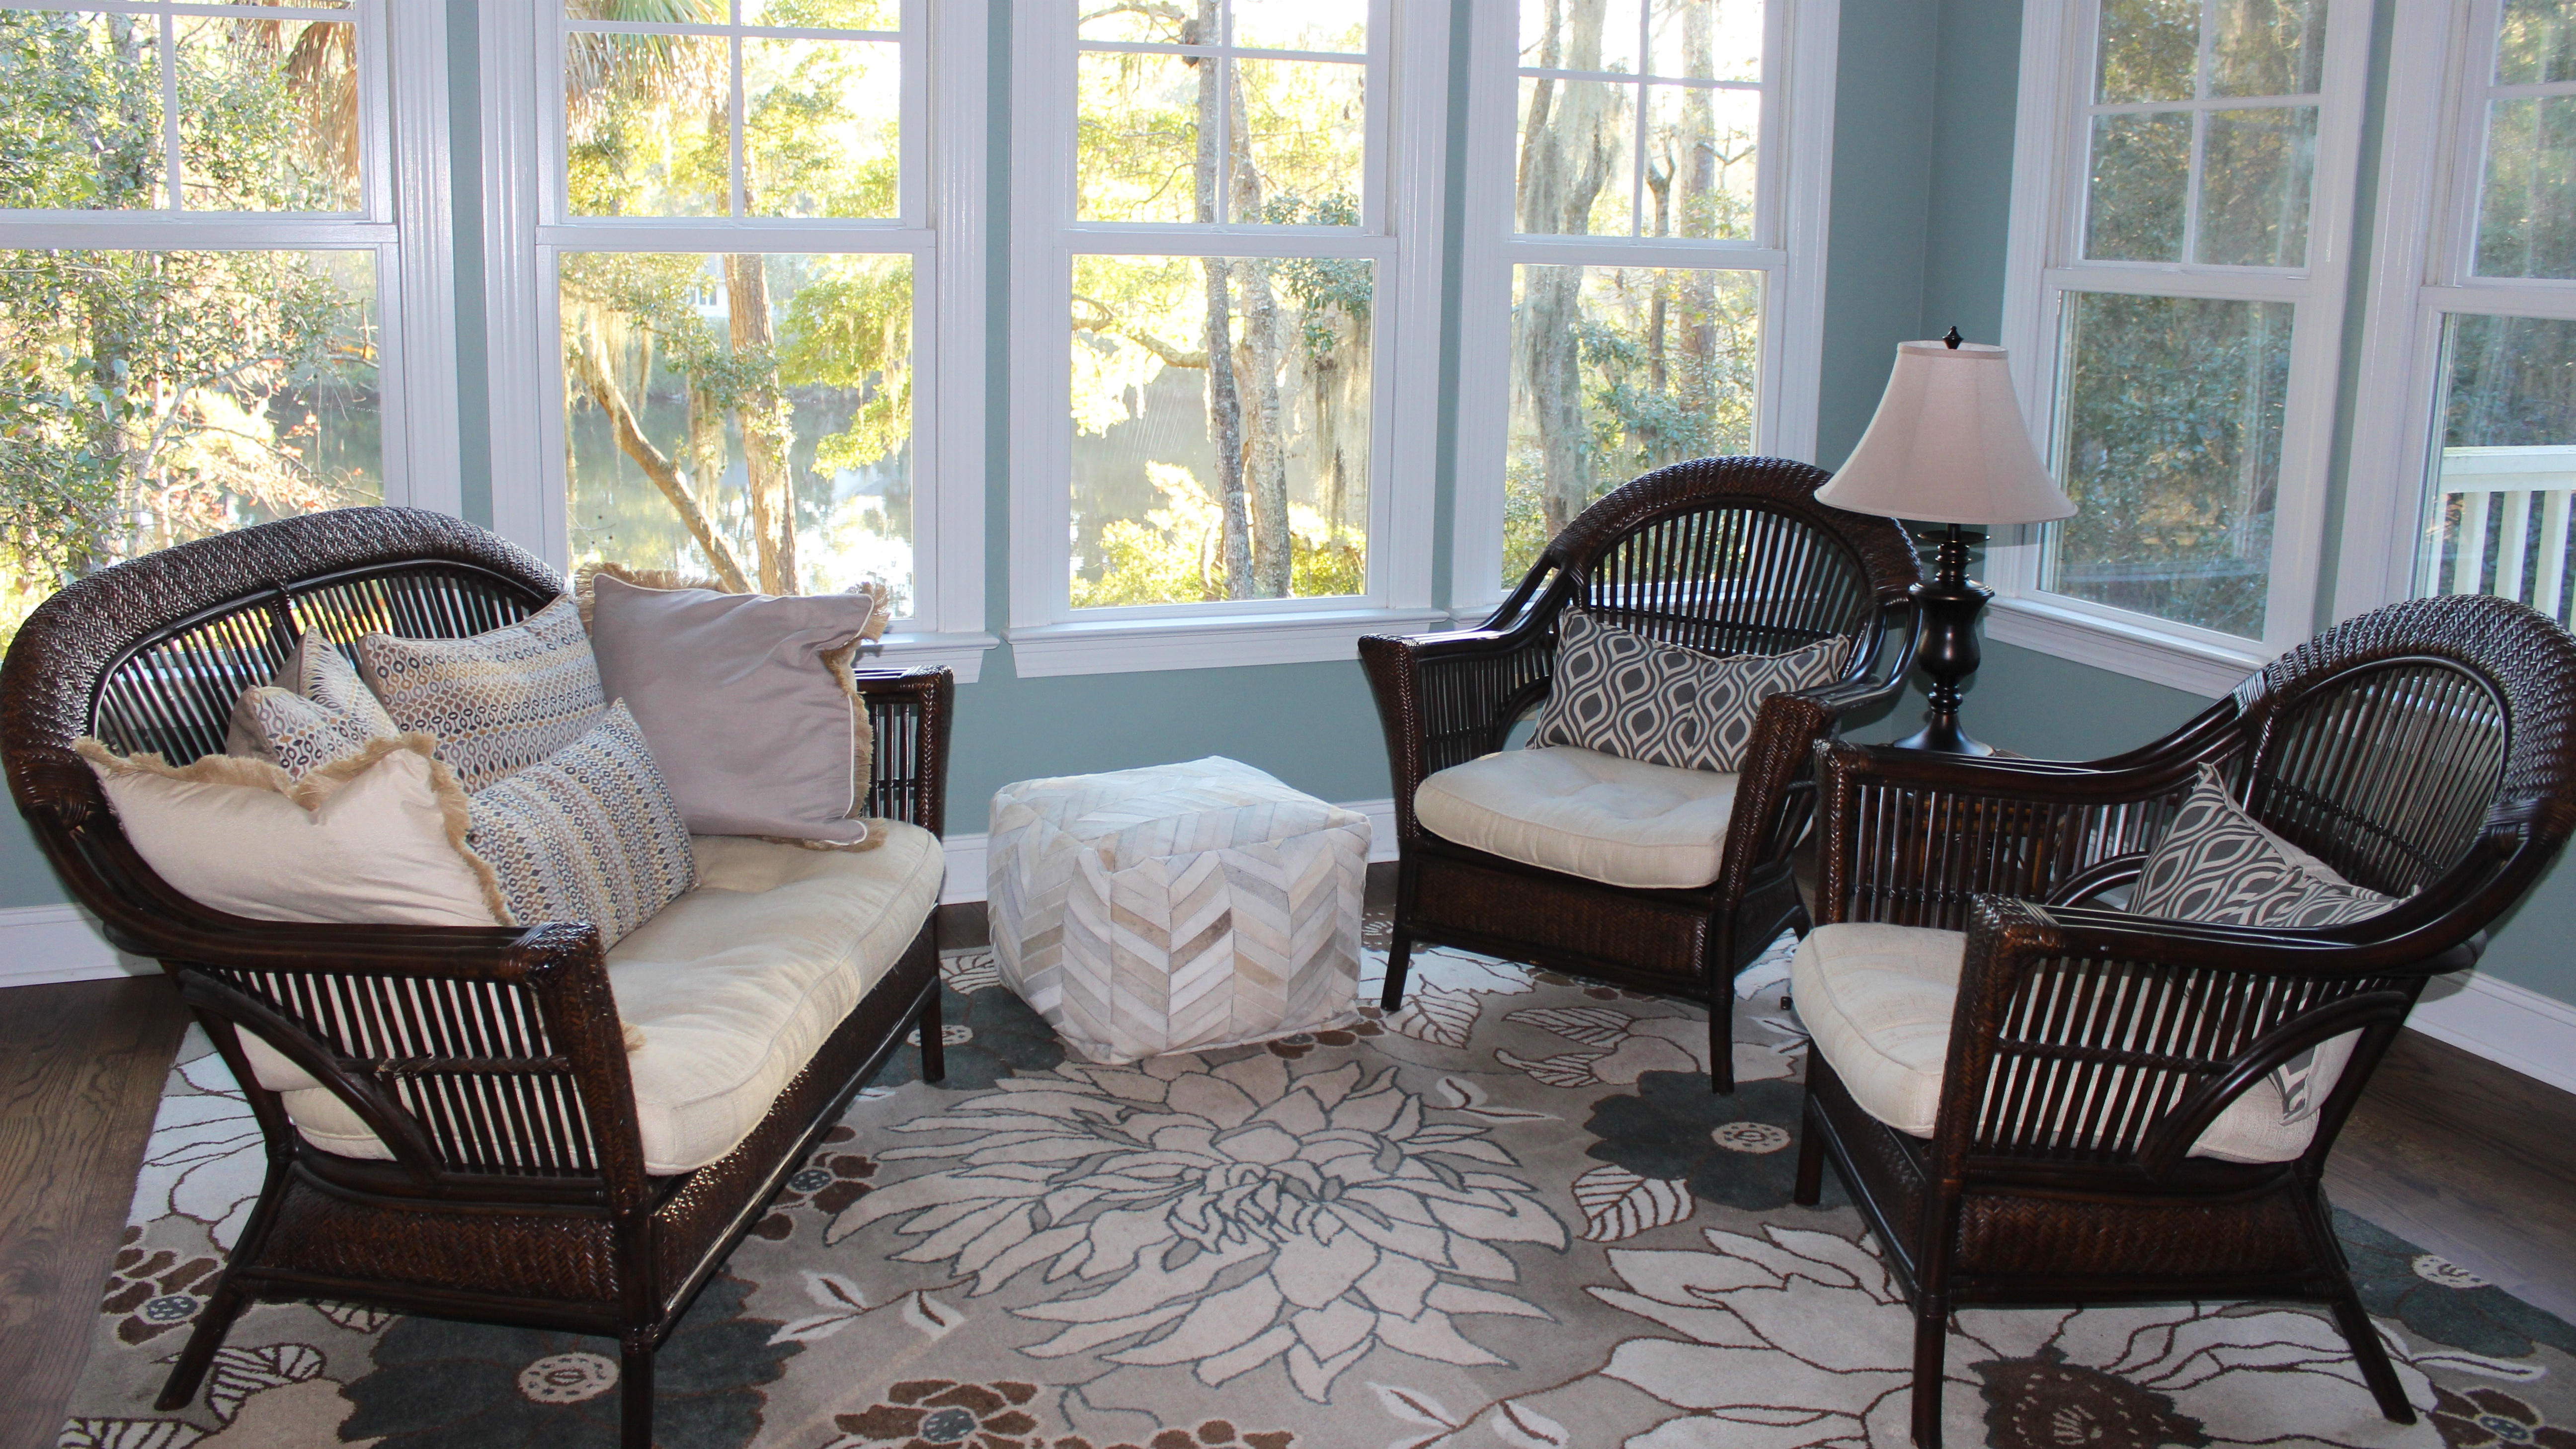 The sunroom is lined with windows offering views of the woods and lake beyond.